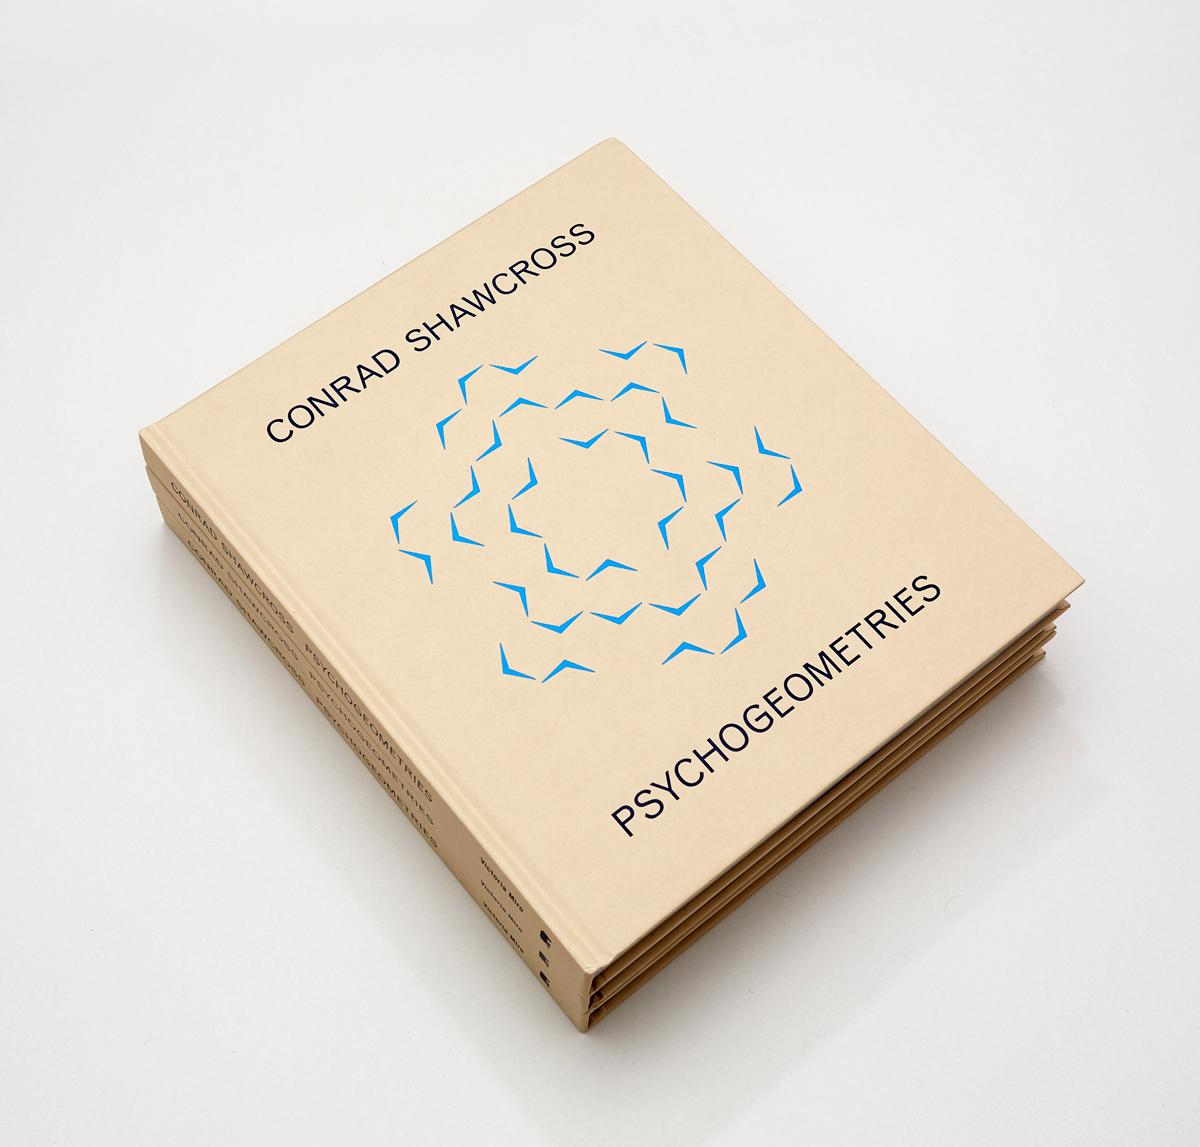 Conrad Shawcross Book Cover